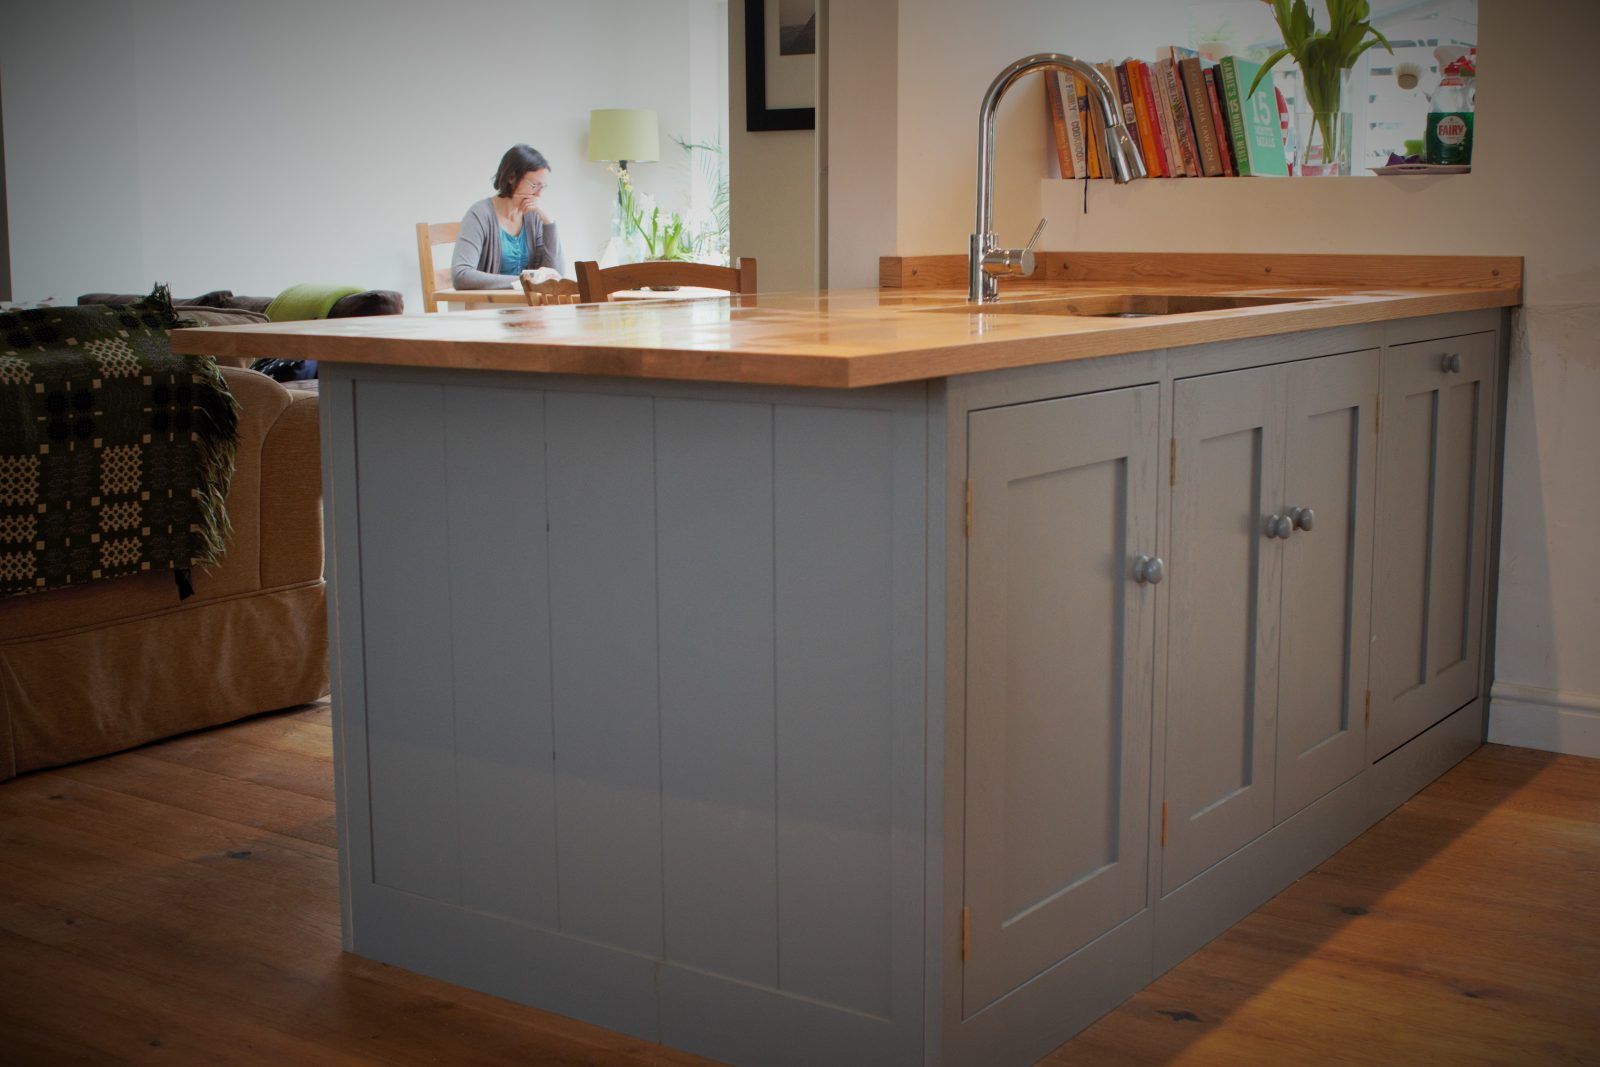 Shaker kitchen with peninsula with a breakfast bar lip